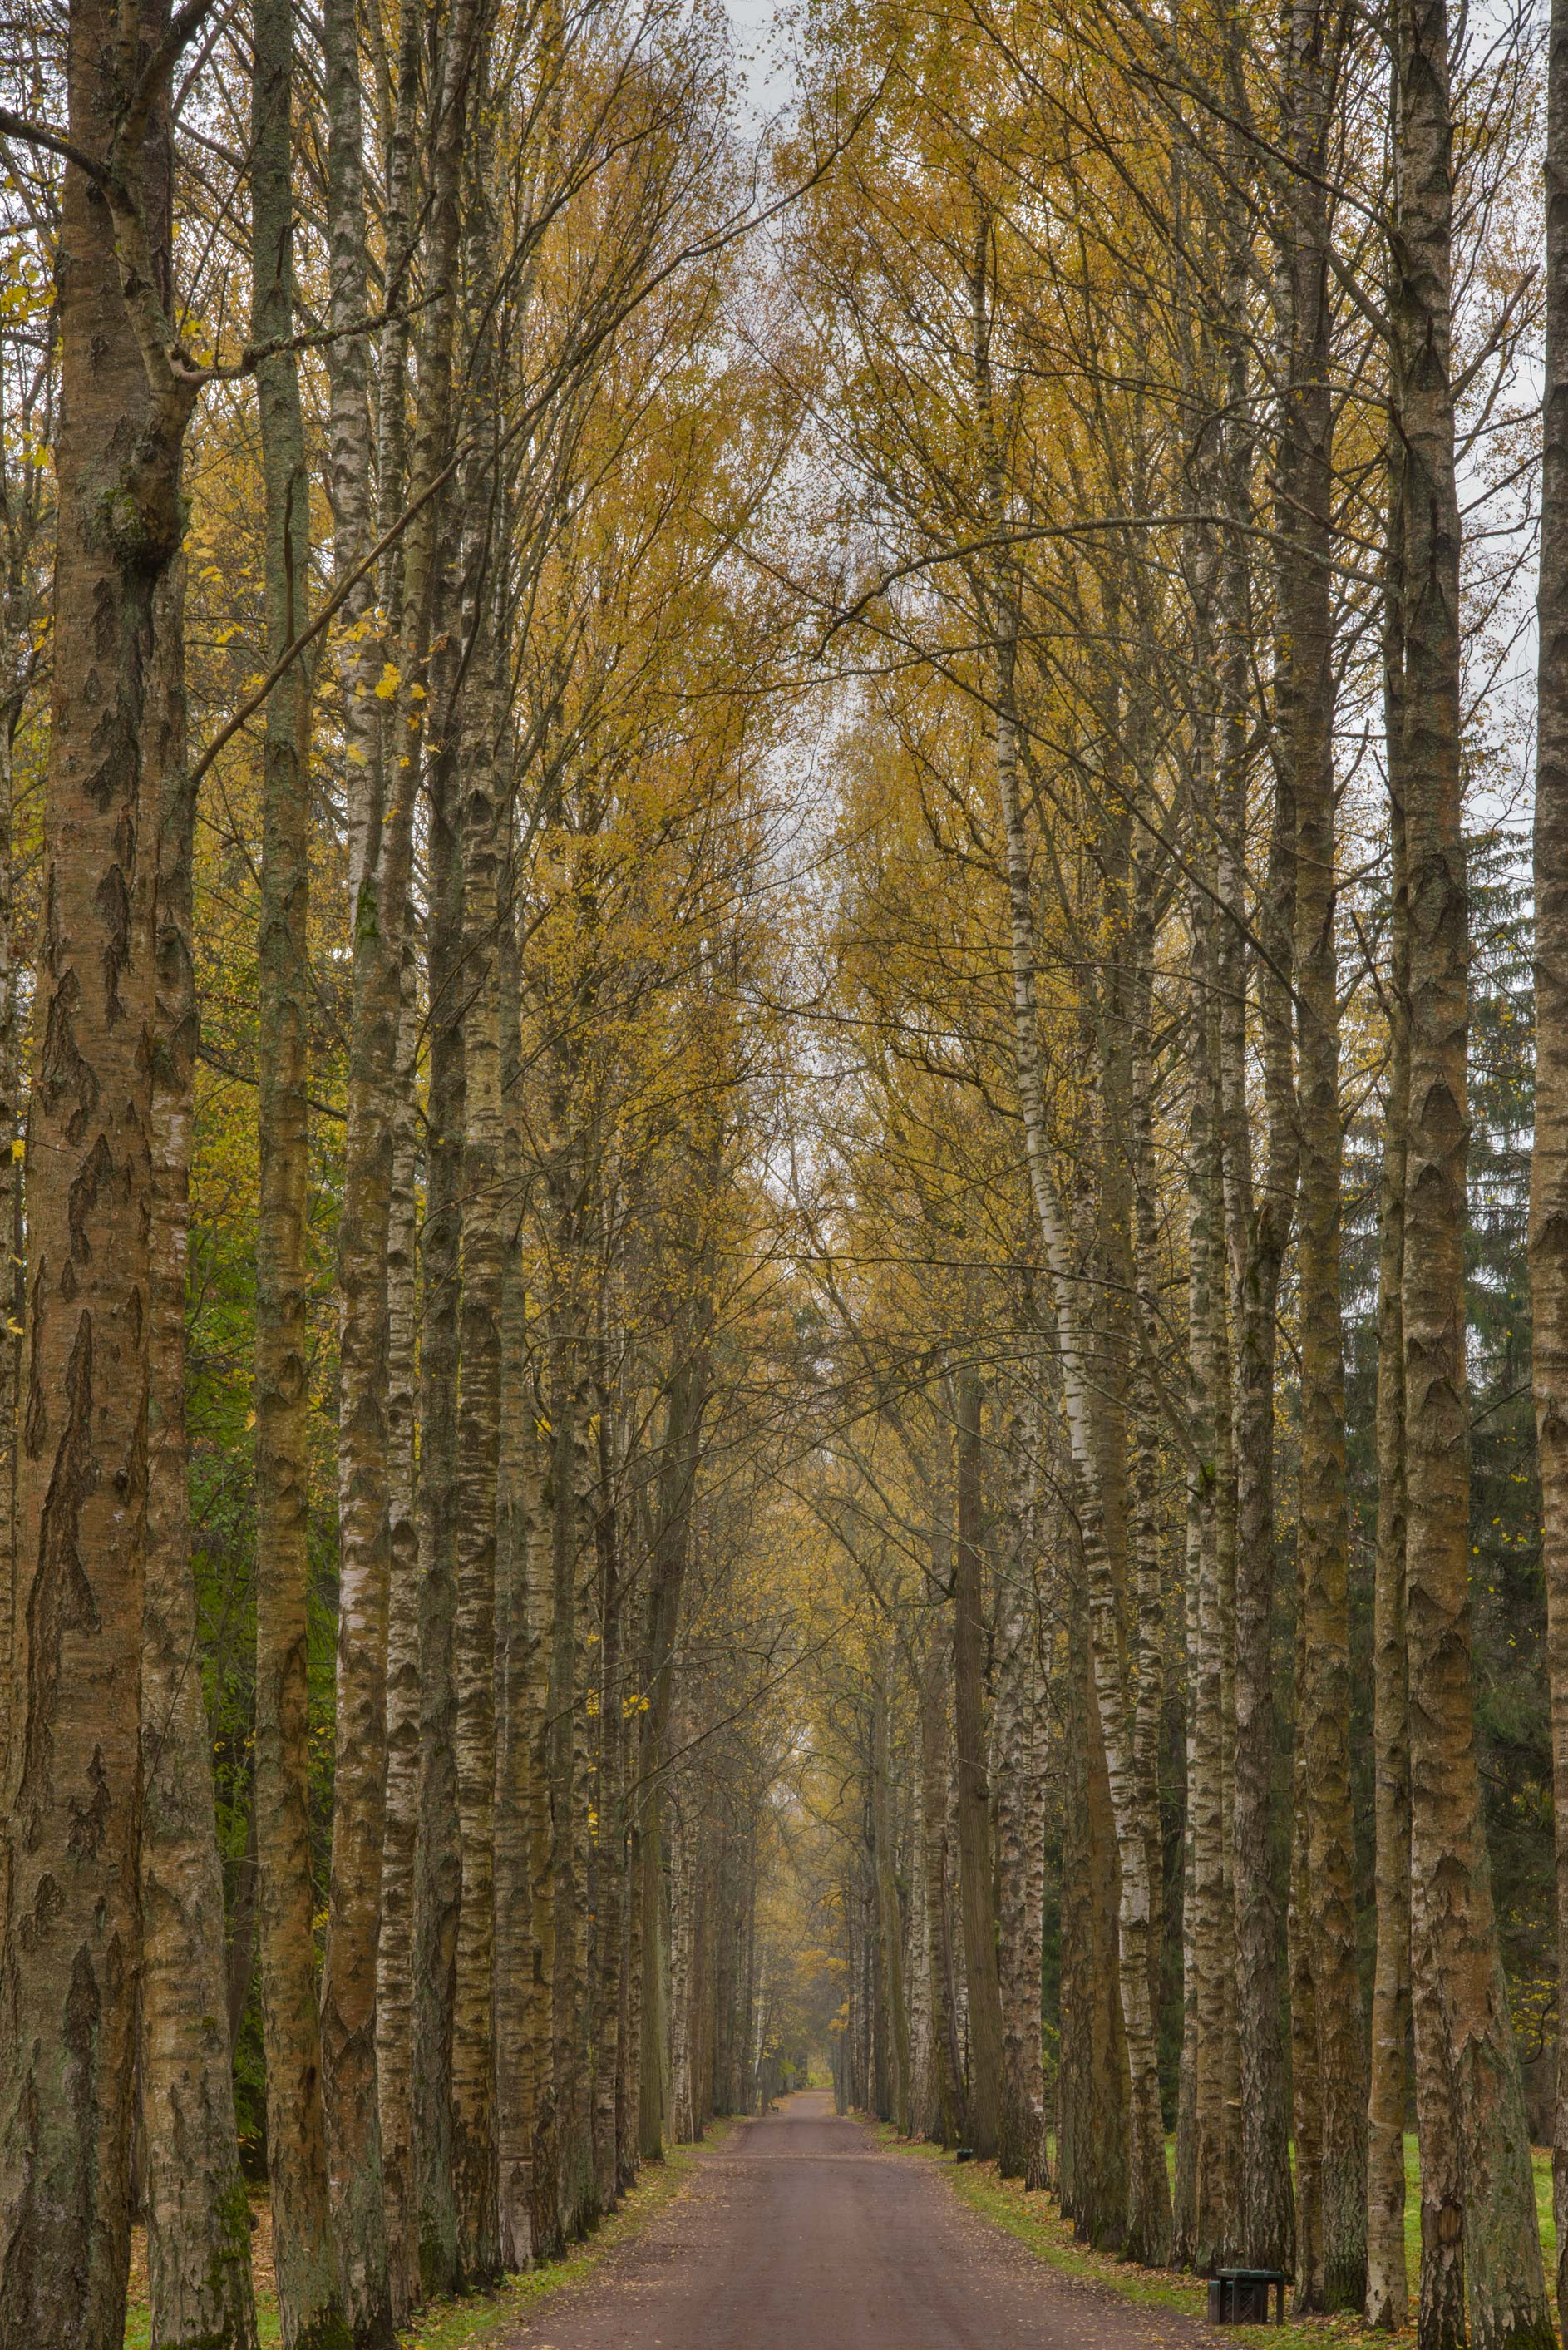 Birch trees of Krasnodolinnaya Alley in Pavlovsk...a suburb of St.Petersburg, Russia